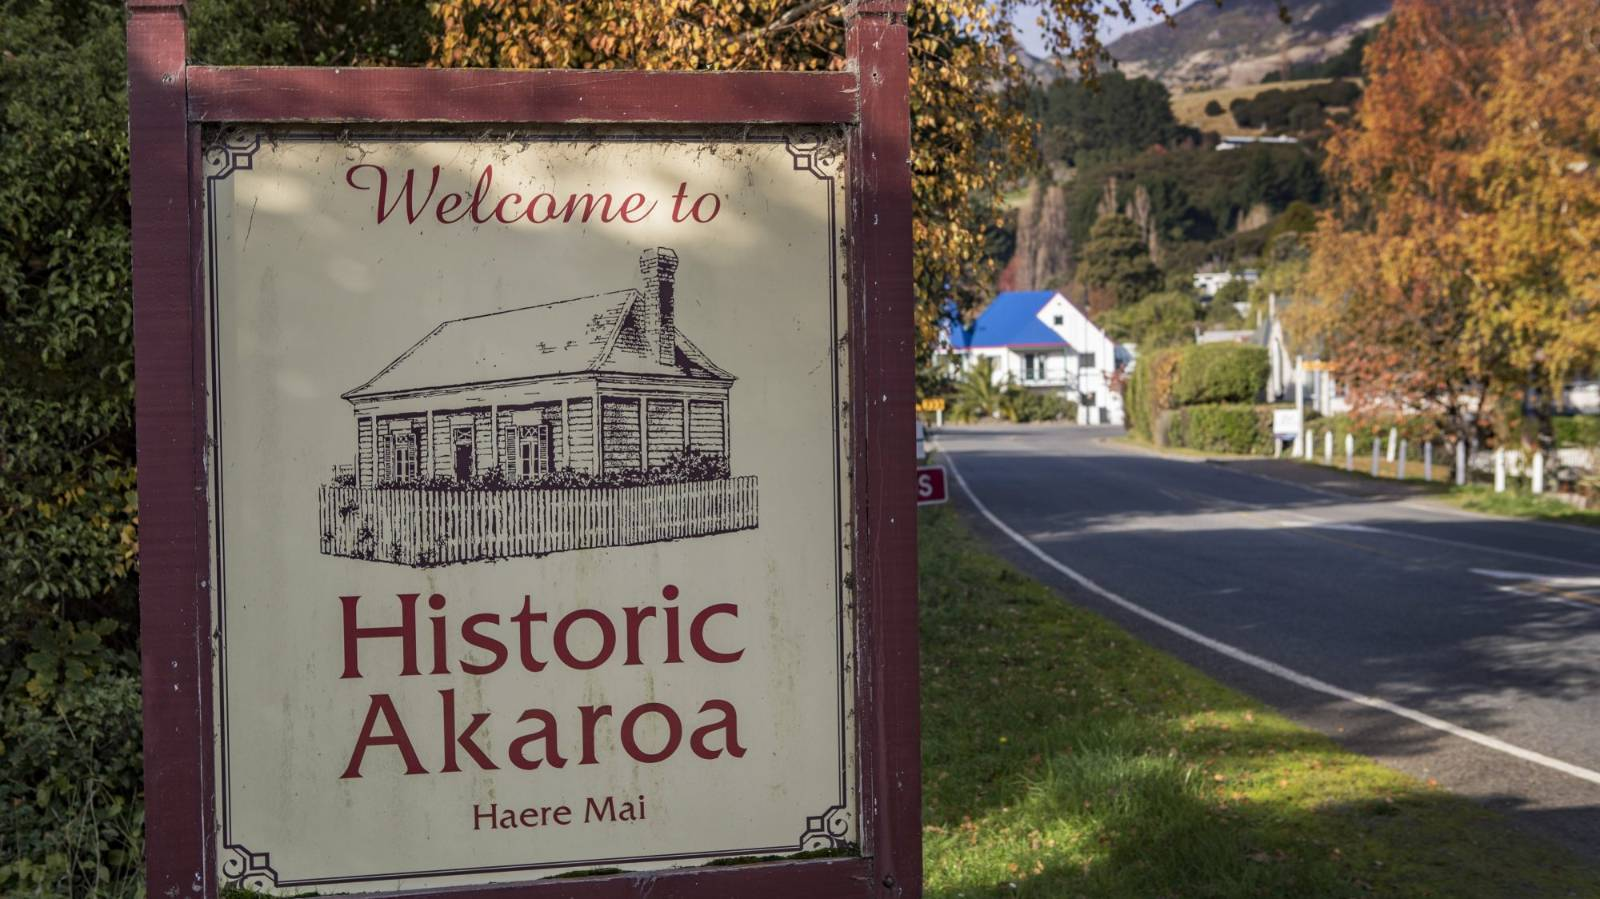 Call to return the missing 'Wh' in Akaroa